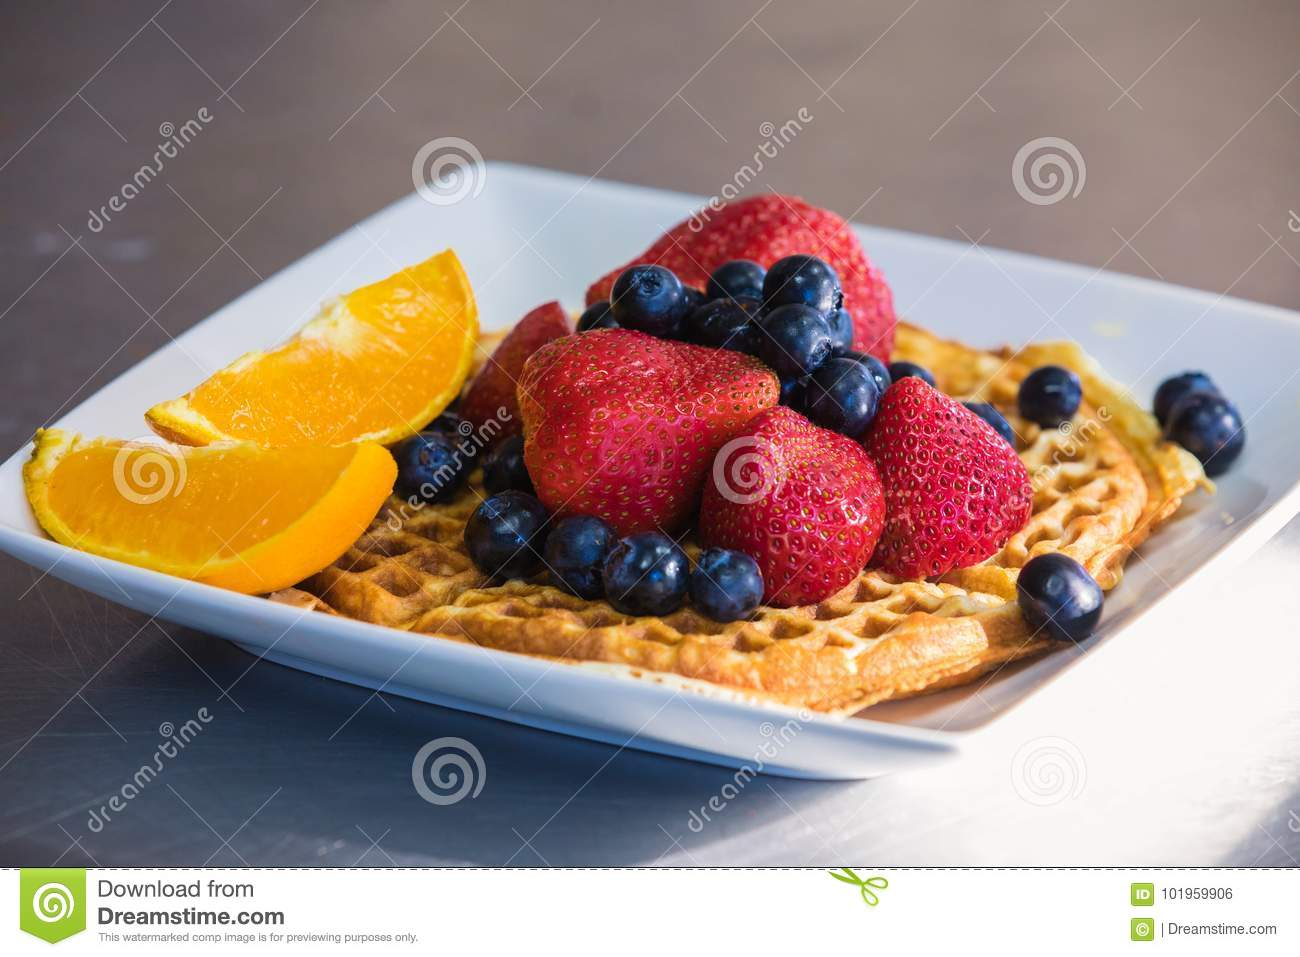 Waffle with berries and orange